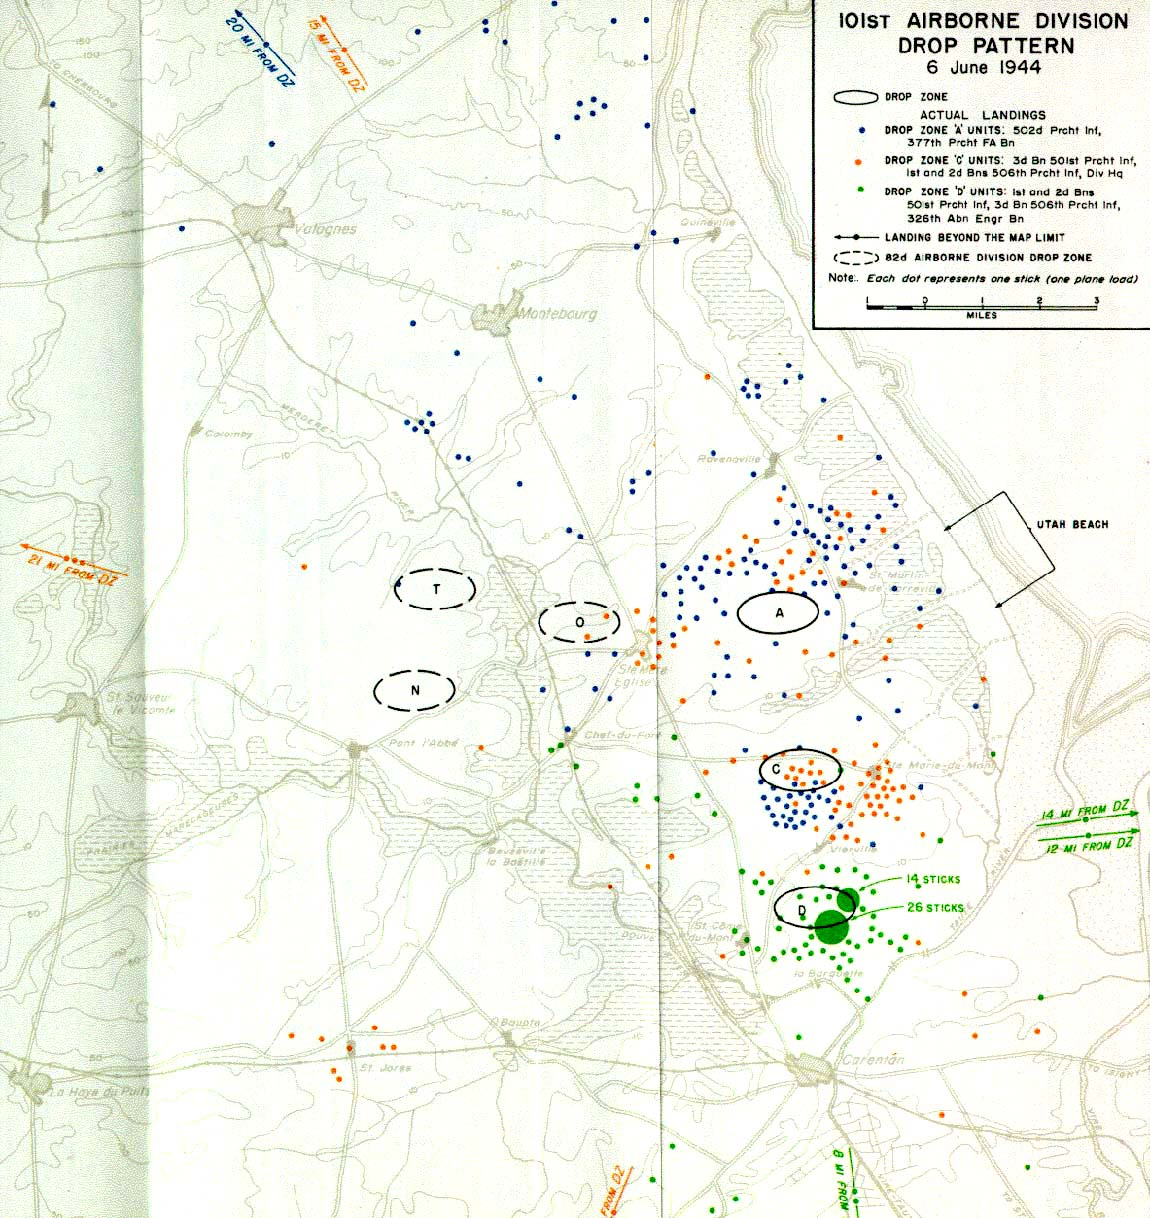 File 101st Airborne Drop Pattern D Day 6 June 1944 Jpg Wikimedia Commons